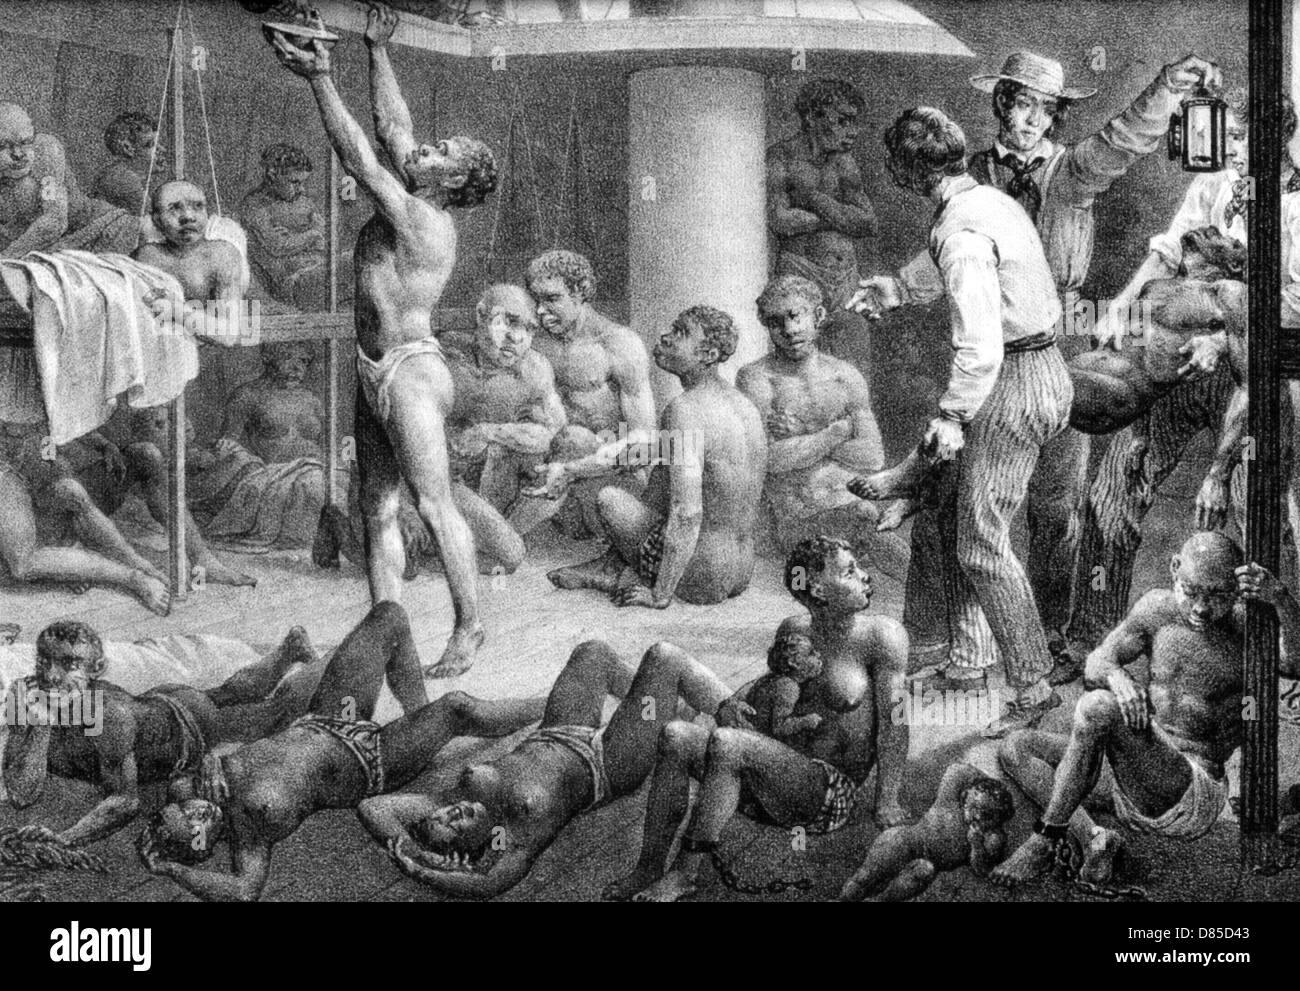 a look at the slavery in athens Published: fri, 21 apr 2017 ancient greek society generally, and therefore classical athens, even when it was a 'democracy', was bored in slavery, an institution which aristotle did not consider to be unjust and which he defends in book i of his politics.